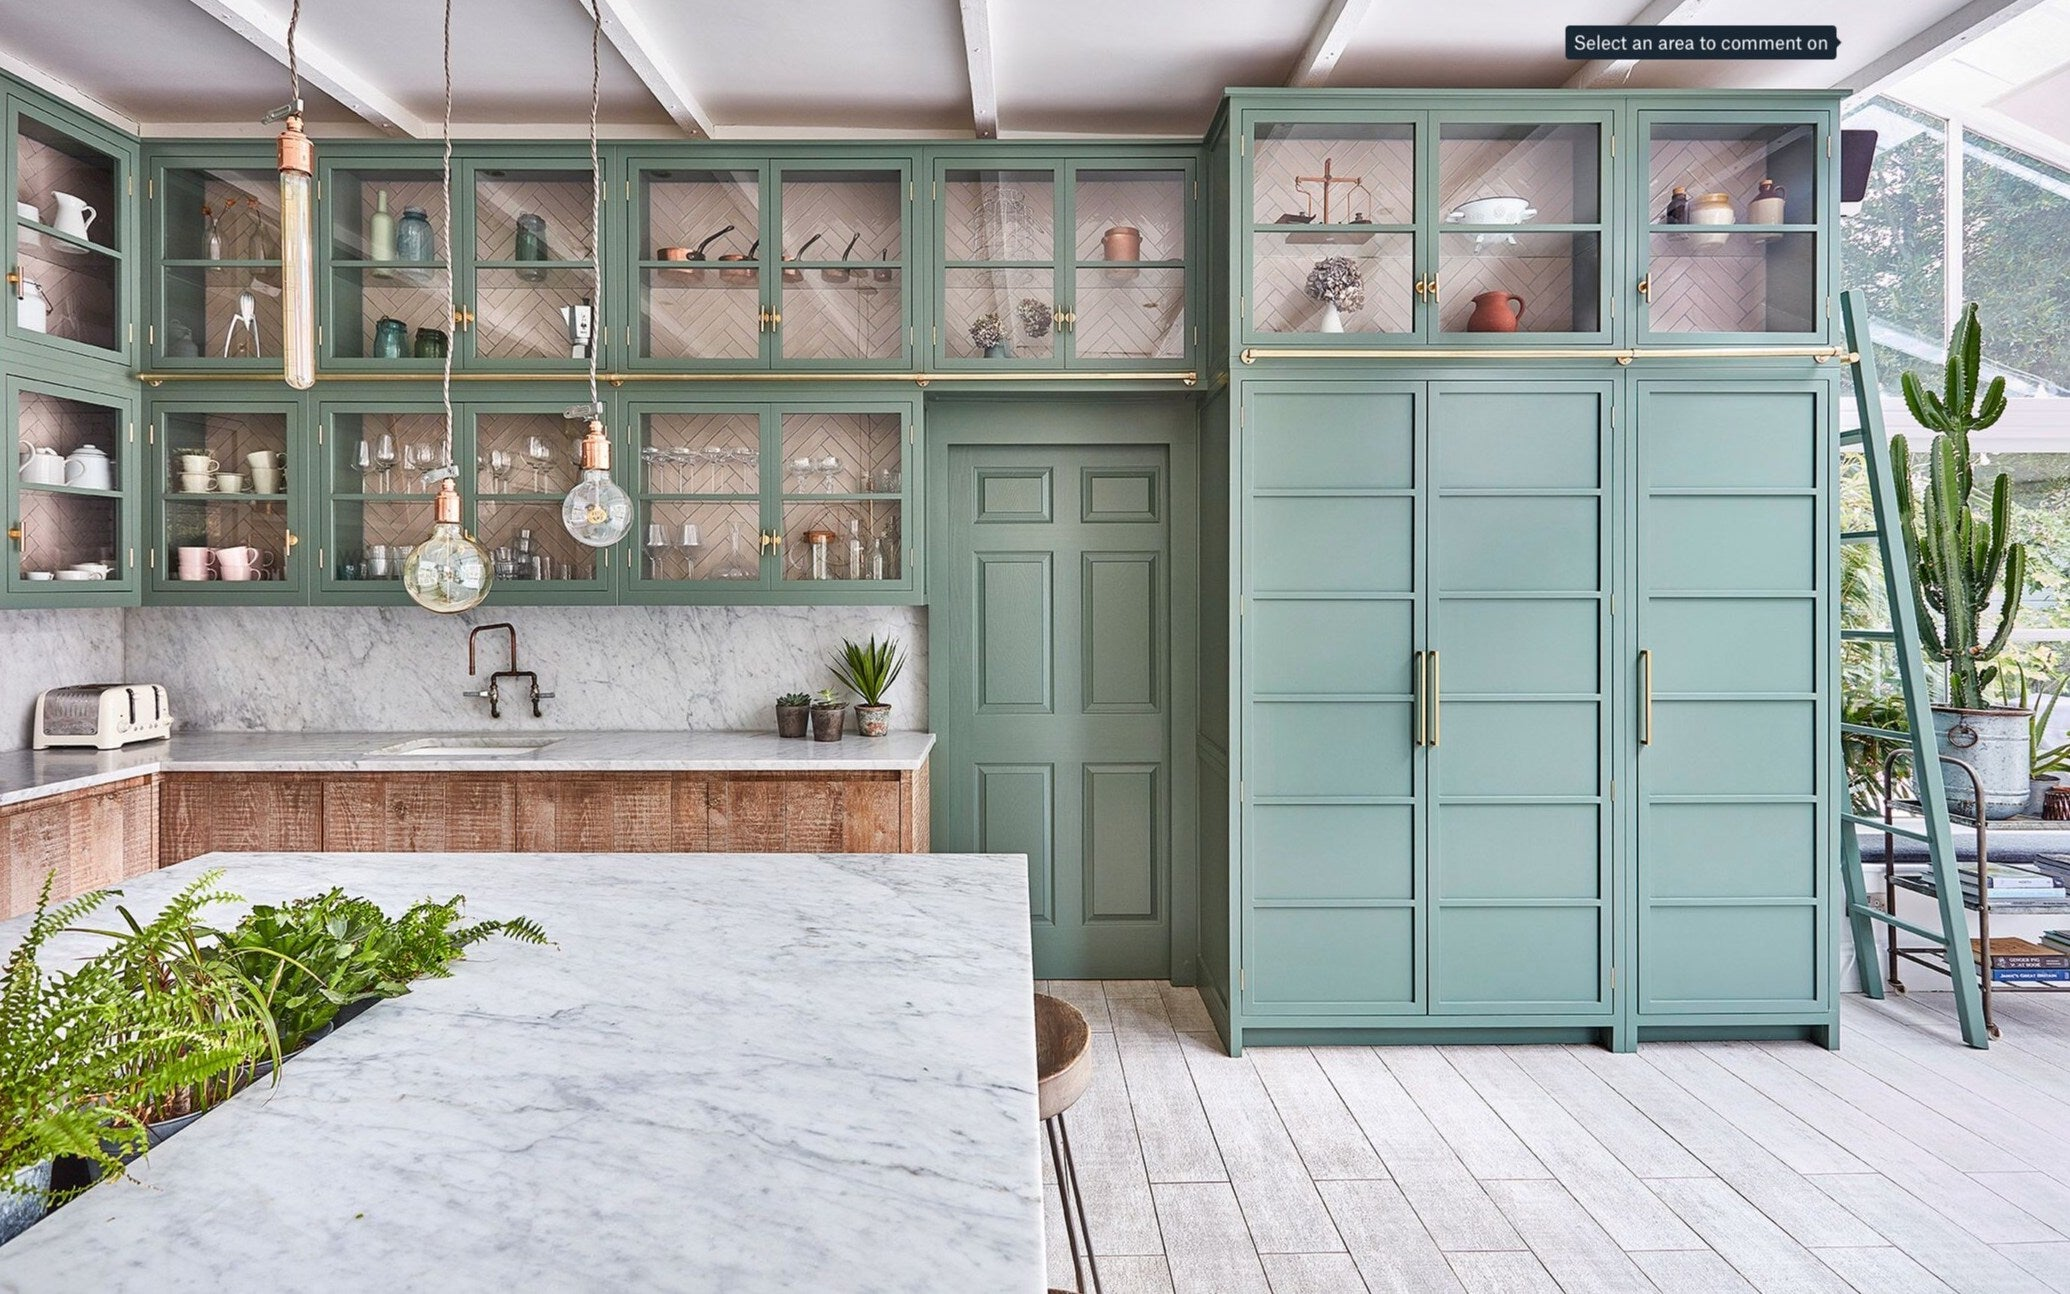 Kitchen Colours - The Latest Kitchen Trends in 2019 - LuxDeco.com